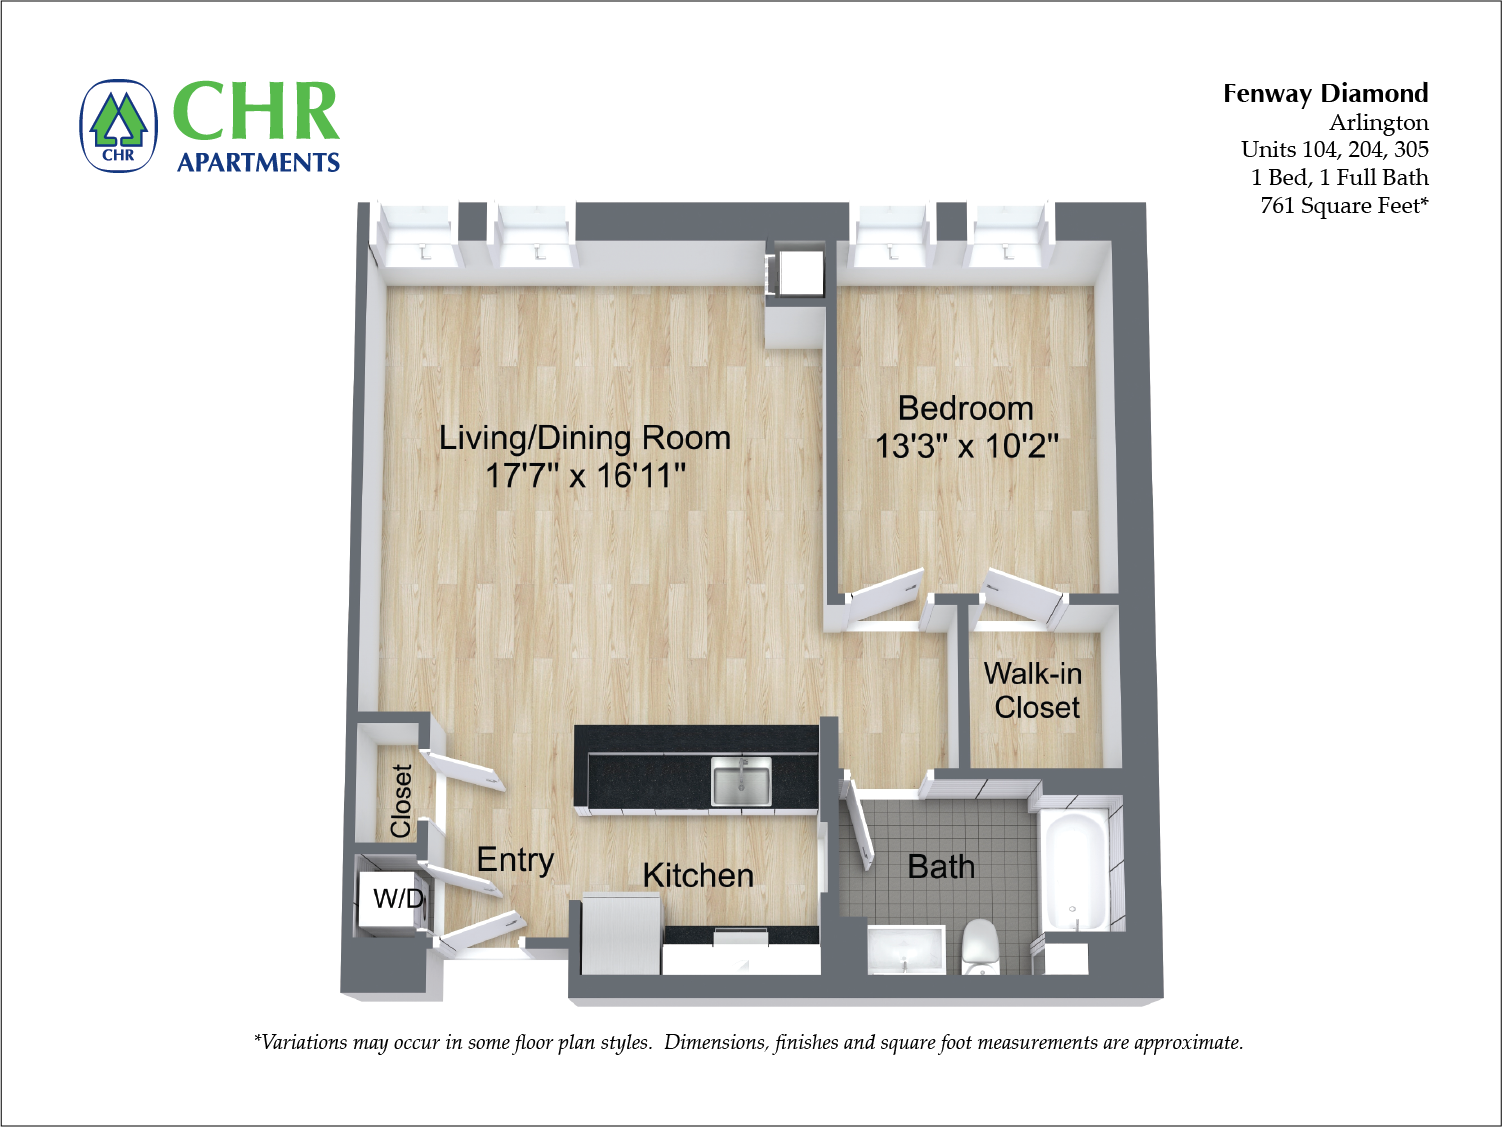 Click to view 1 BR w/ Walk-in Closet floor plan gallery